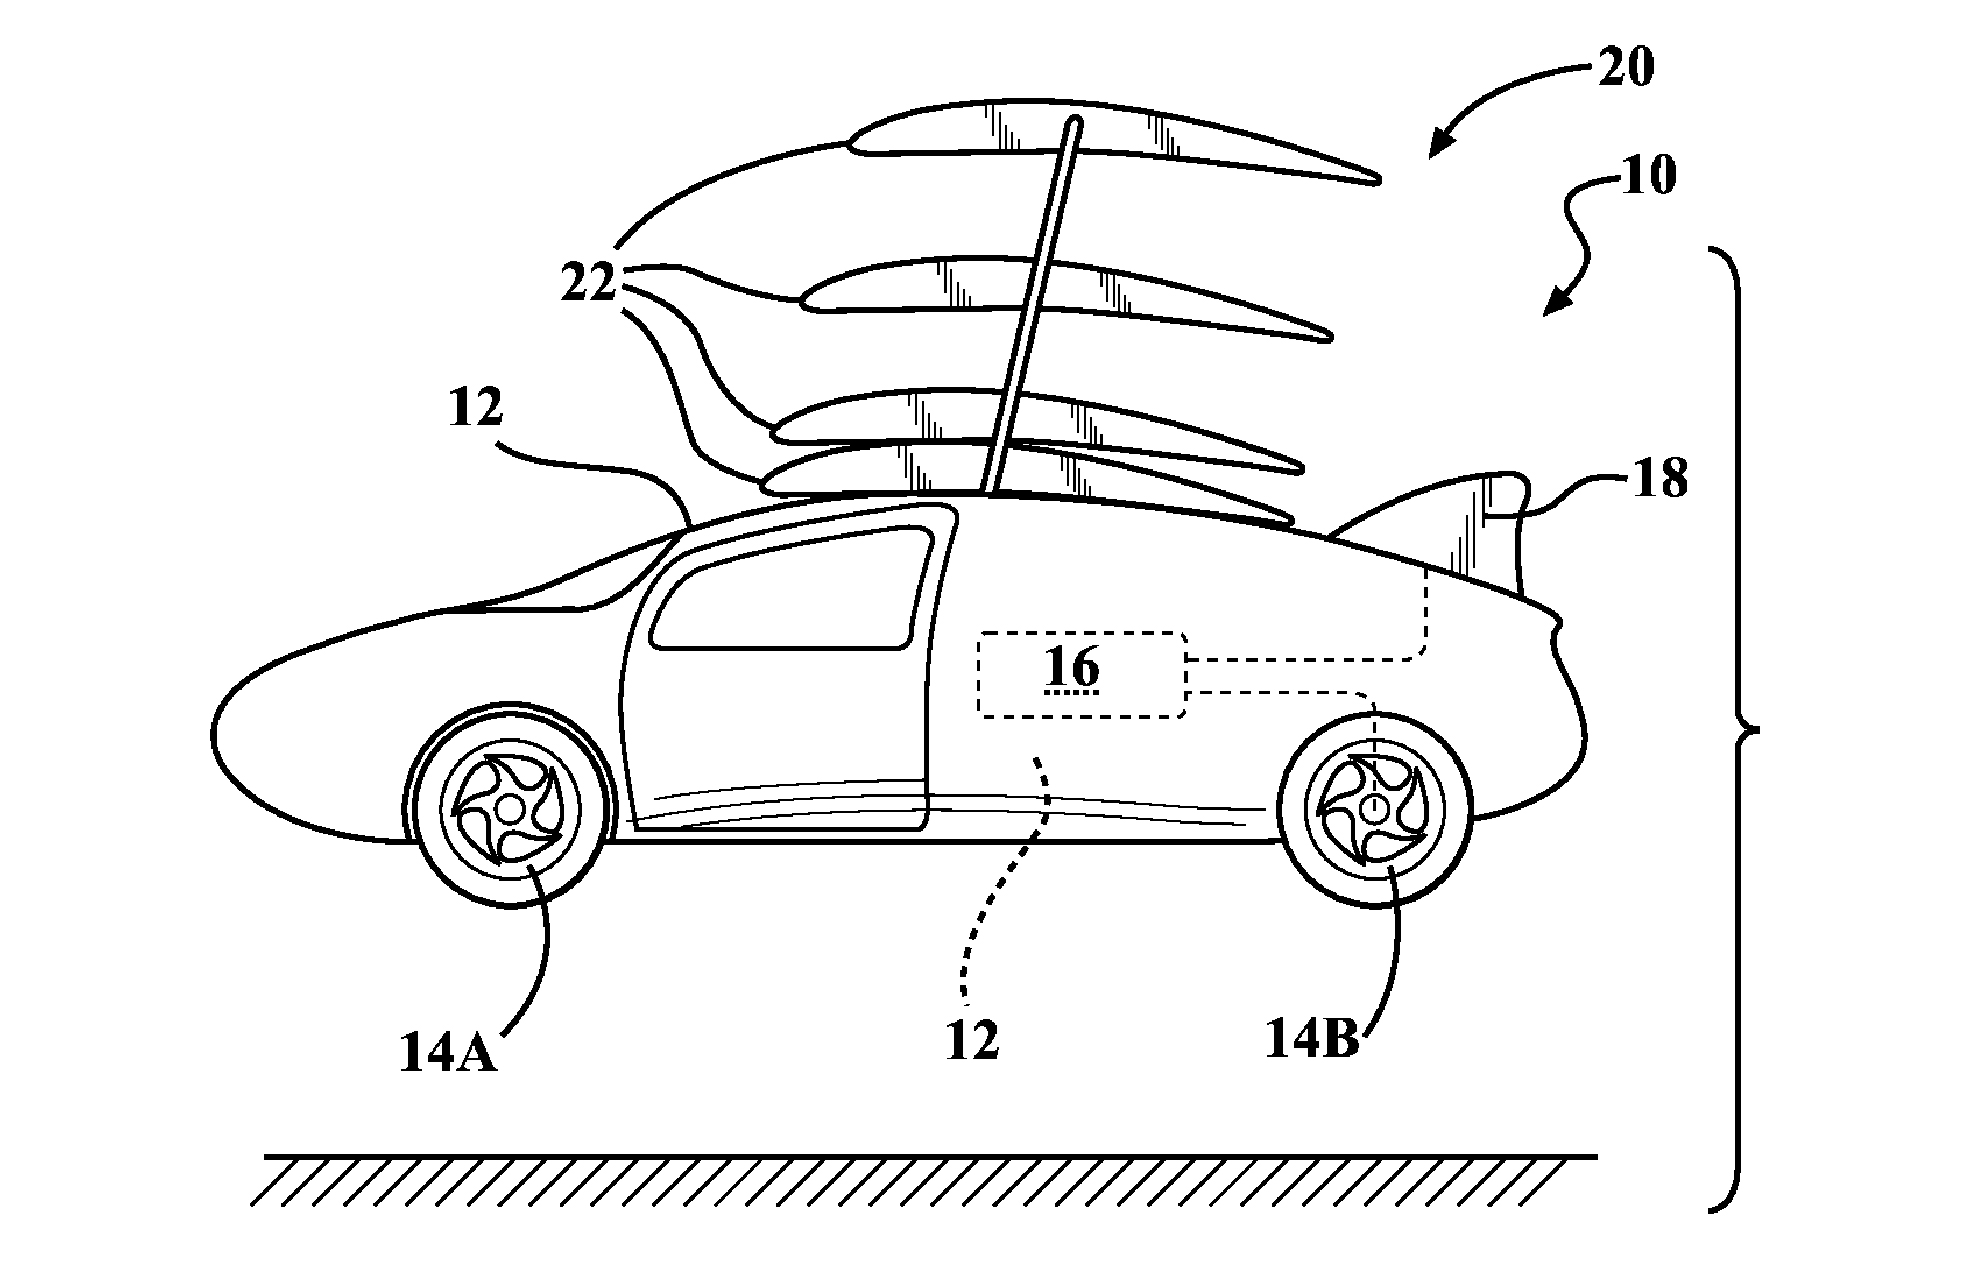 Is Toyota Working on a Ridiculous Flying Car?